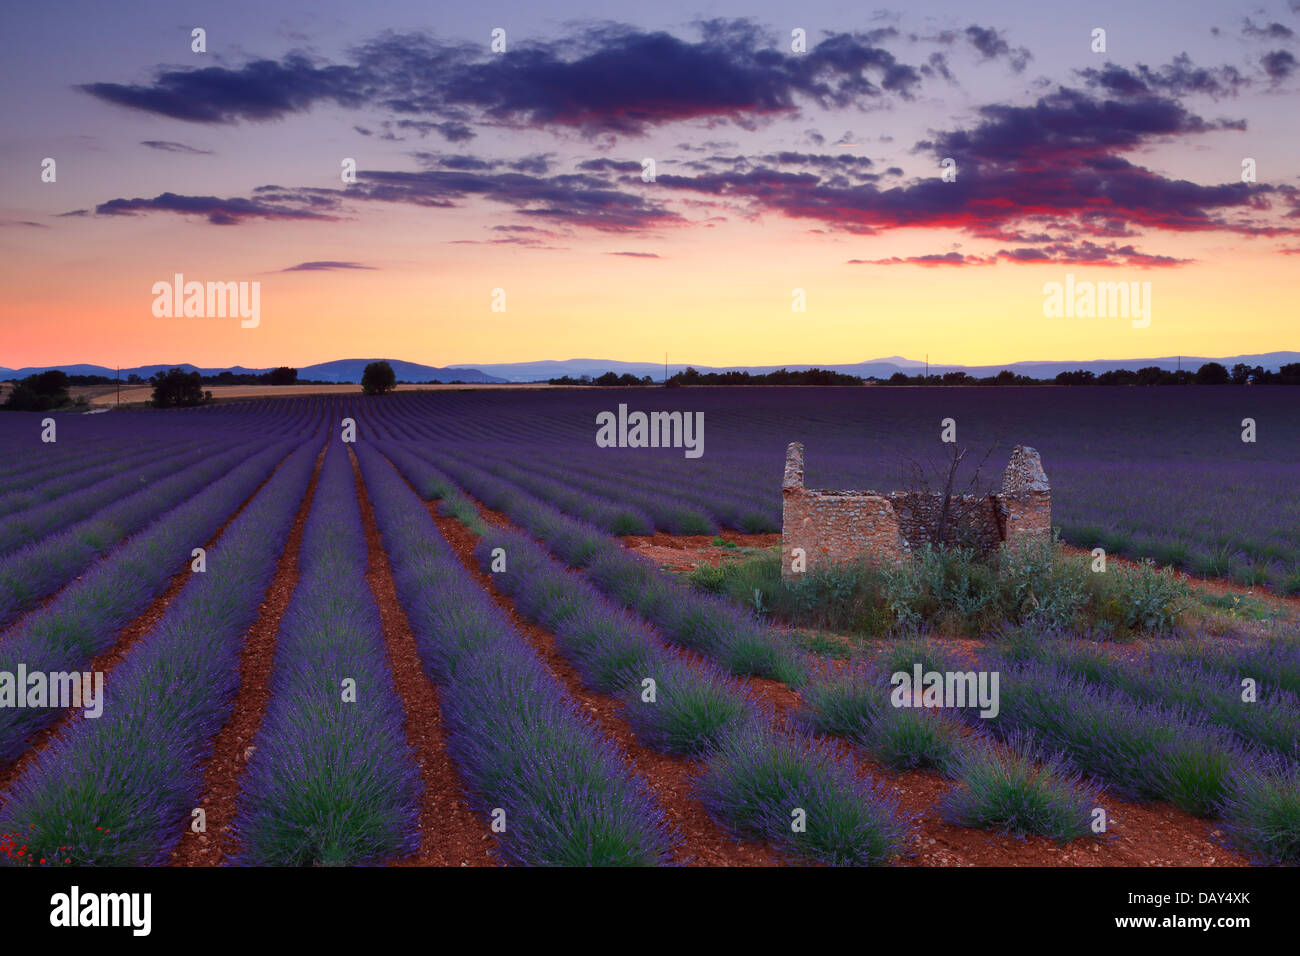 Lavender field at sunset. Provence, France. Stock Photo